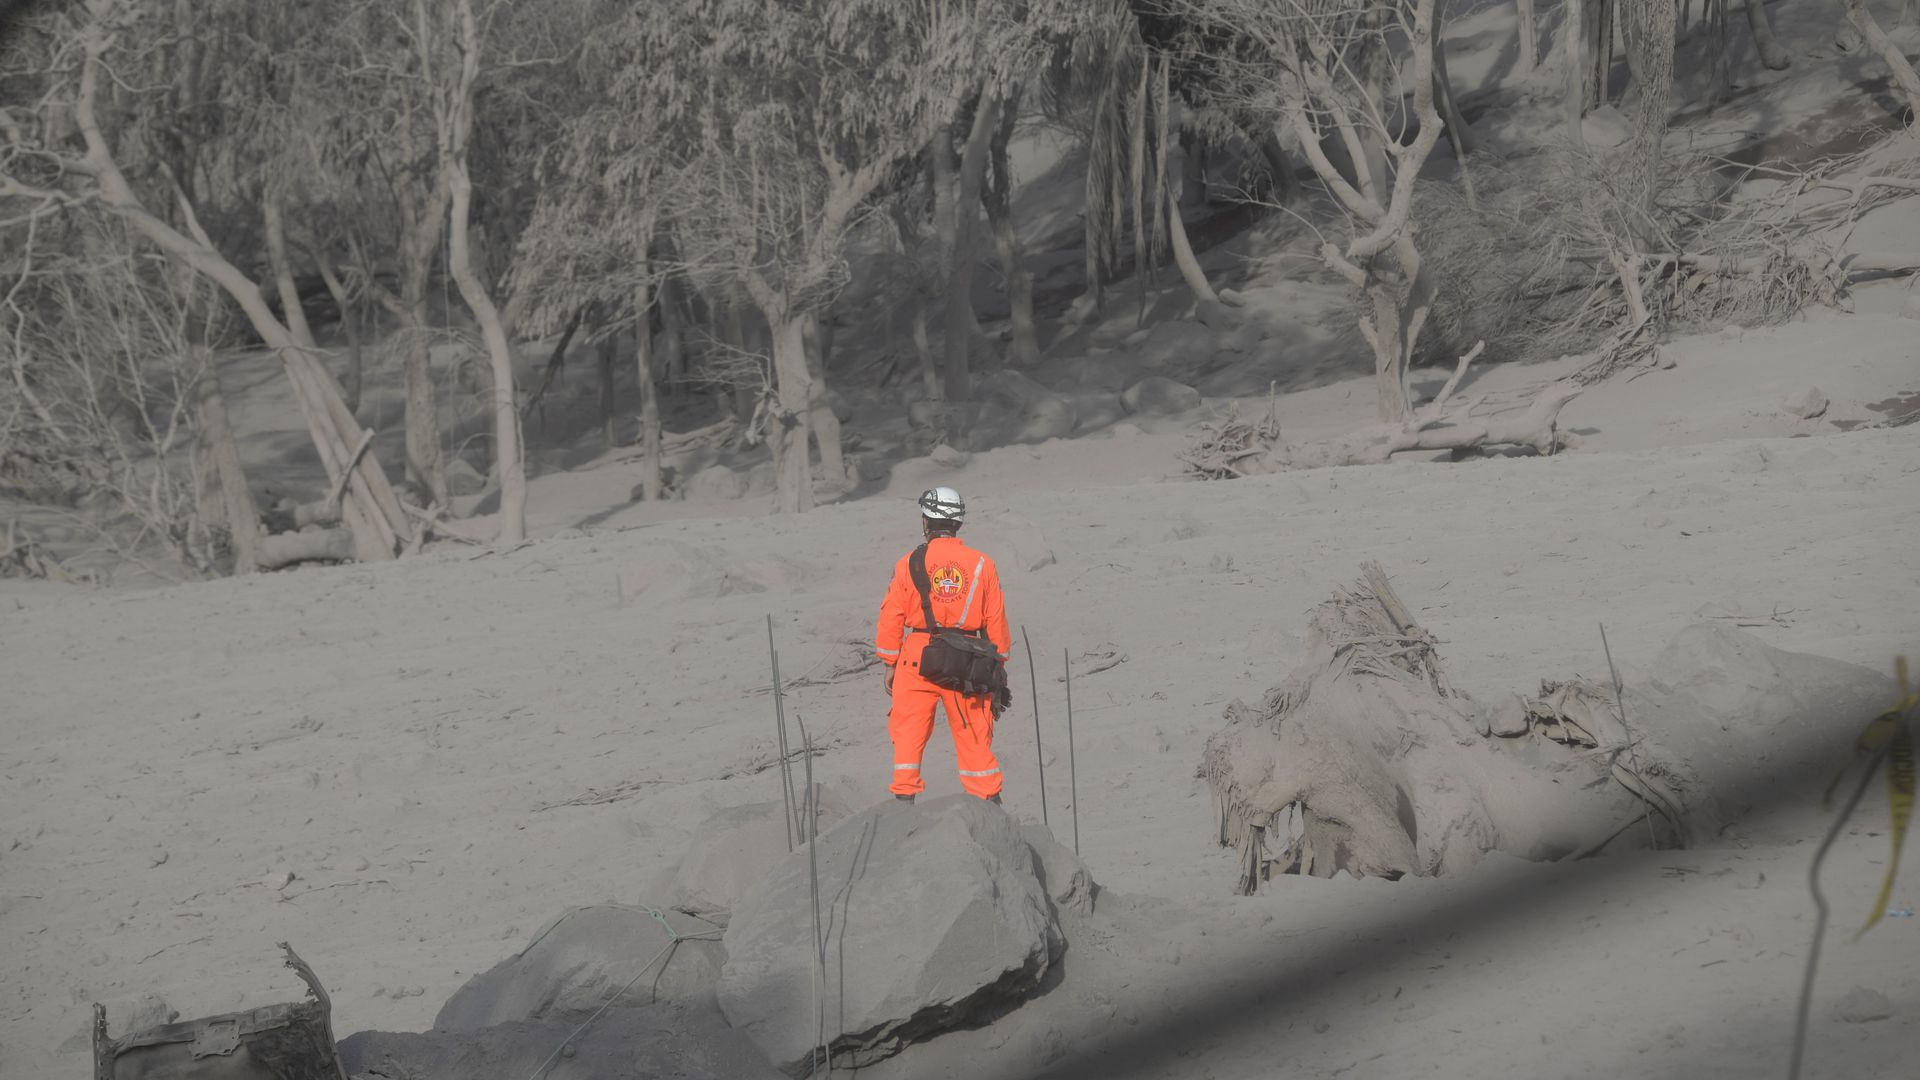 A firefighter standing in an area covered by ash after the eruption of the volcano.